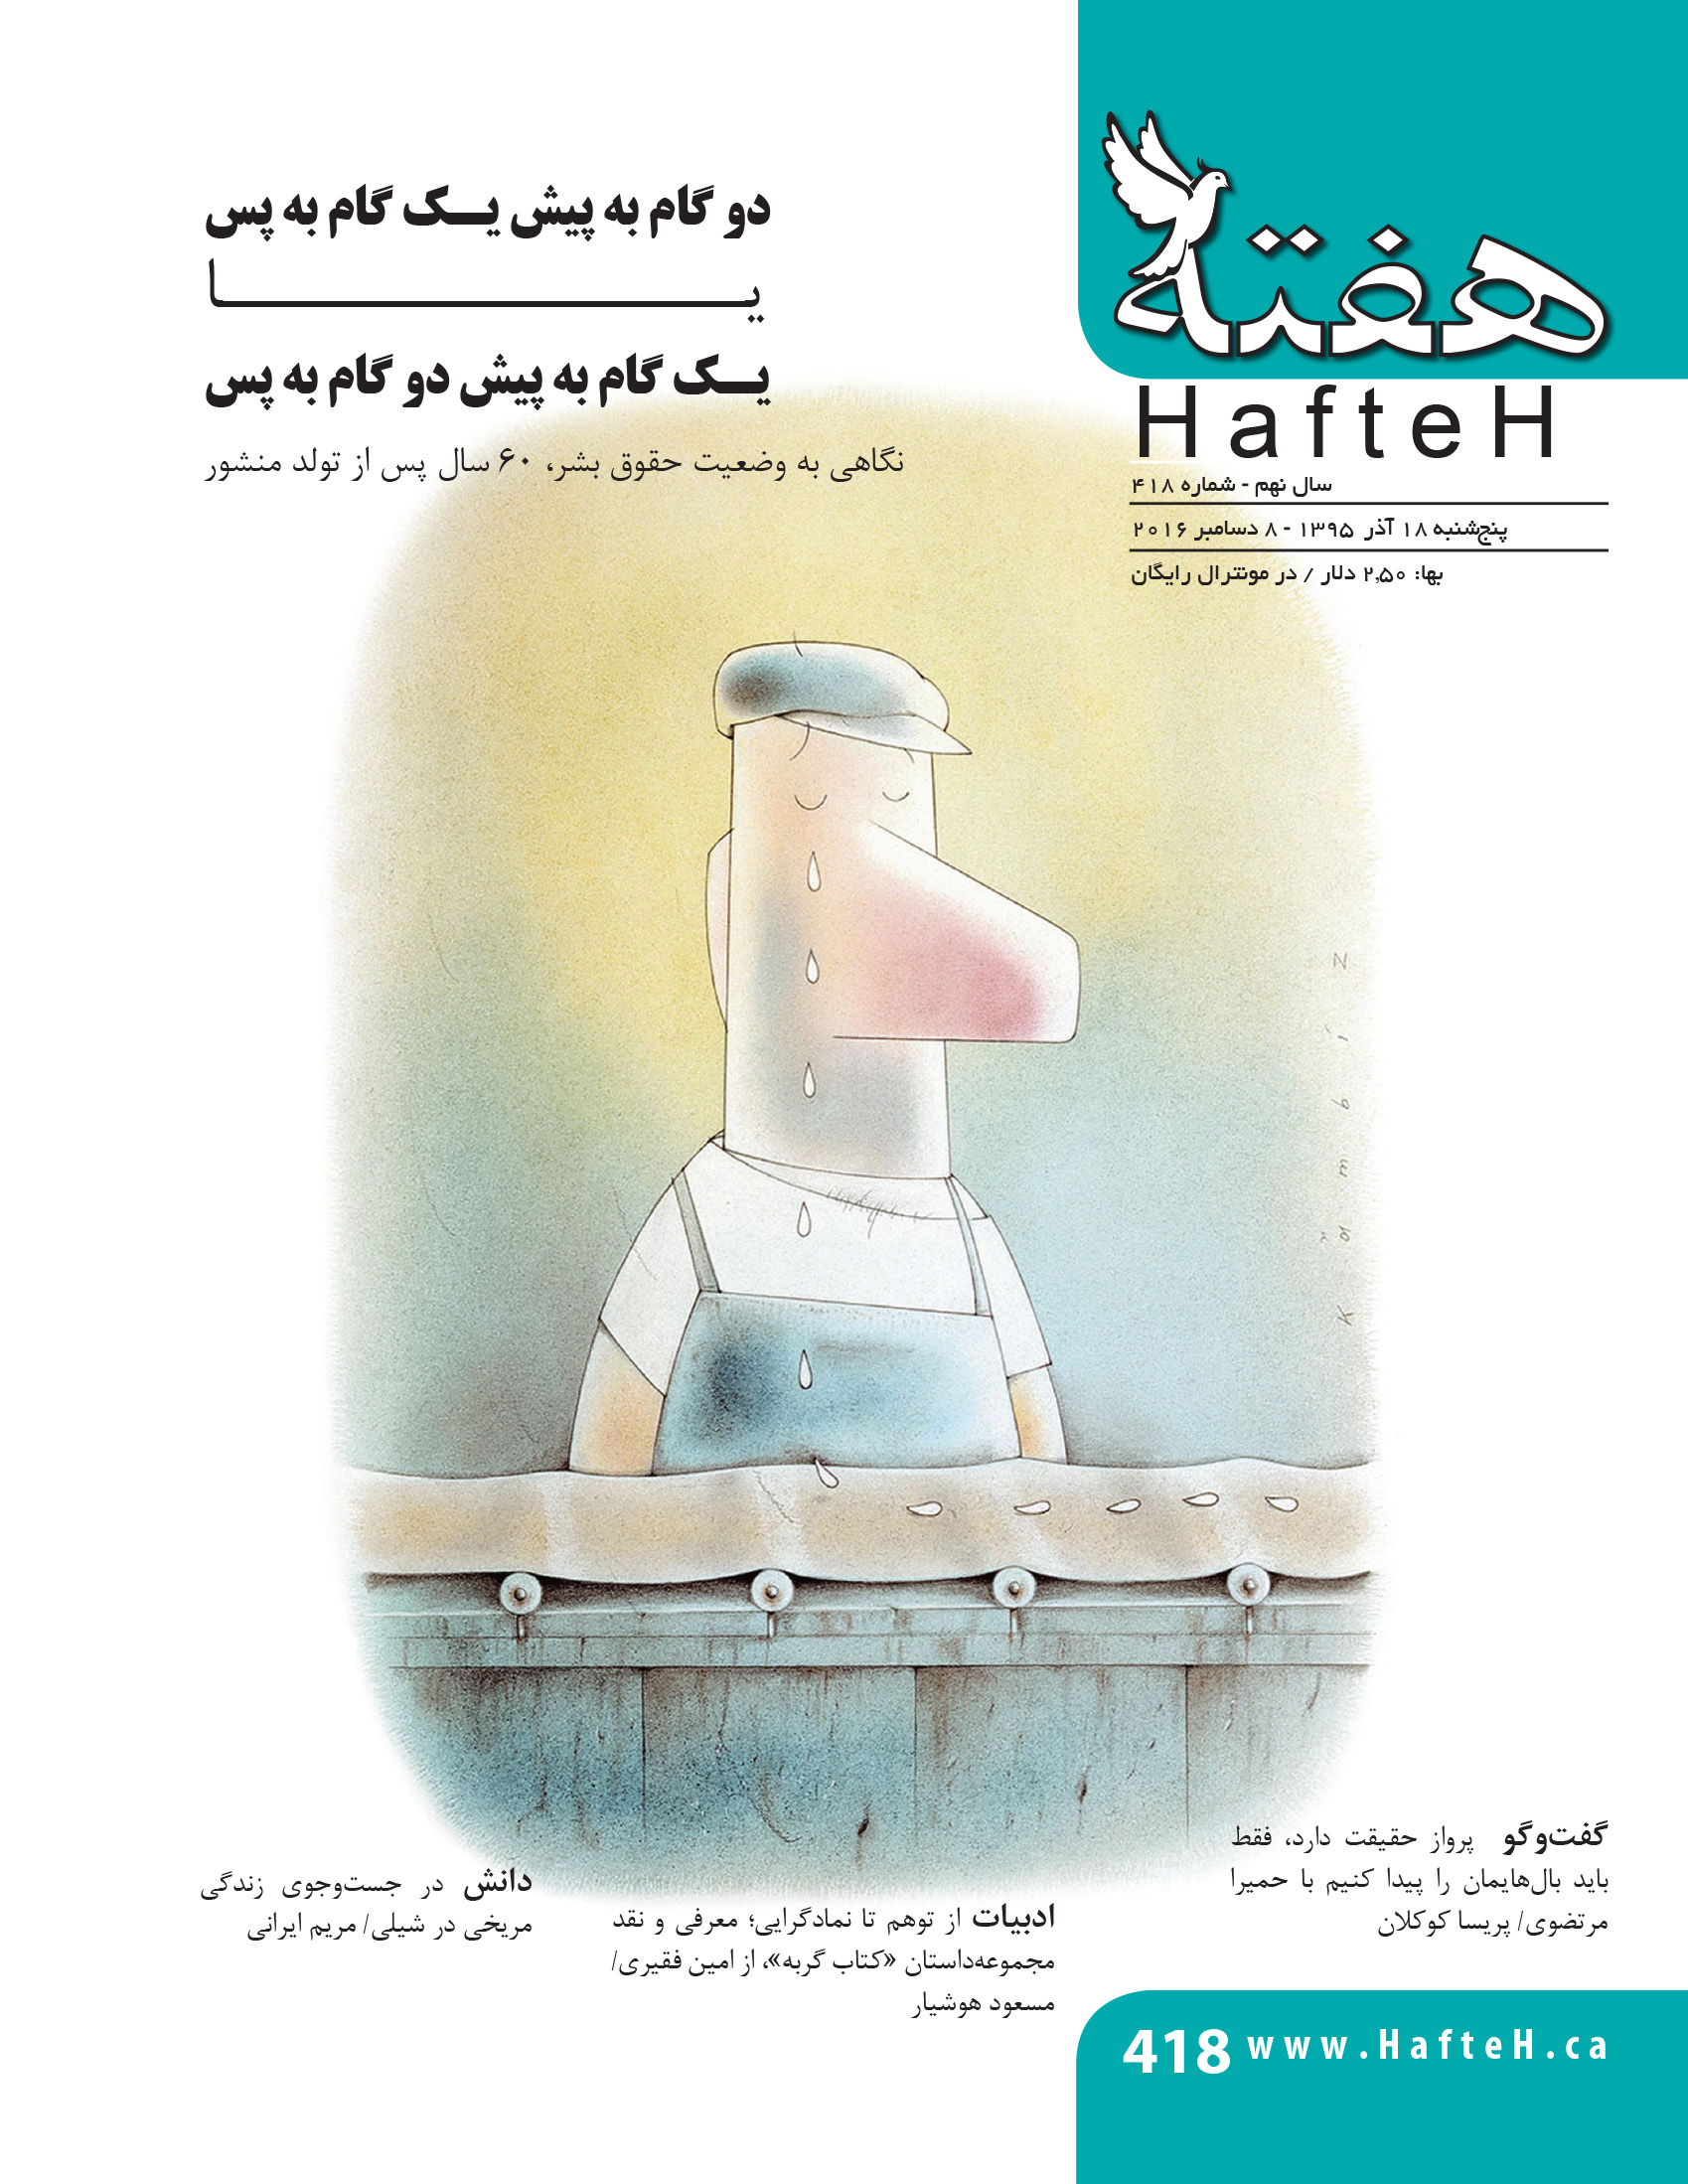 Hafteh - Issue Number: 418